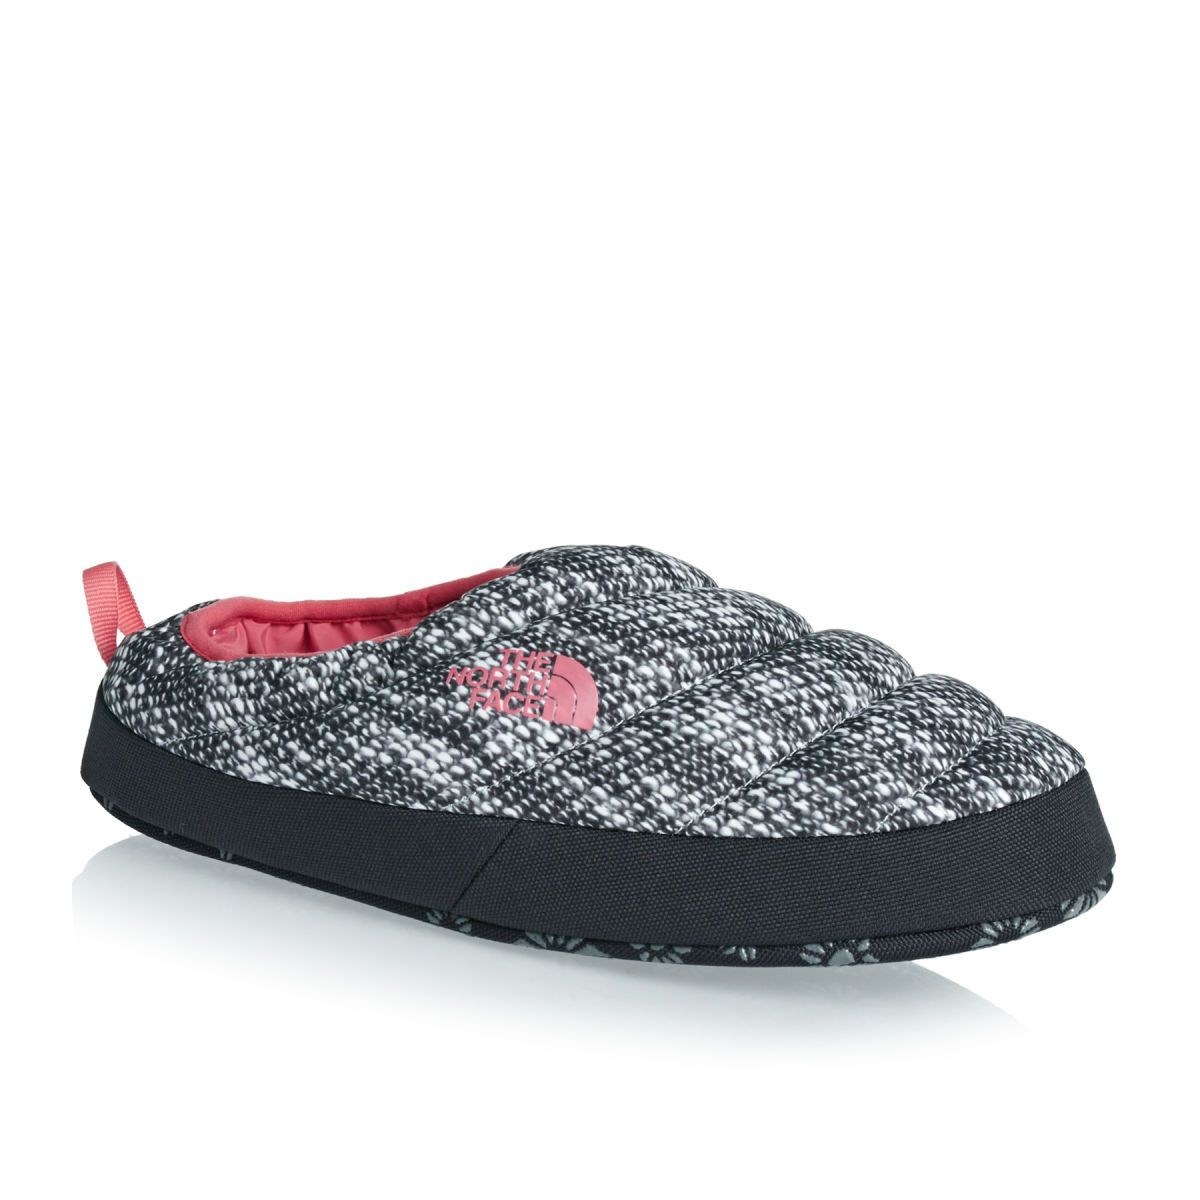 db49b09db The North Face Women's NSE Tent Mule III Slippers - Knotty Knit ...